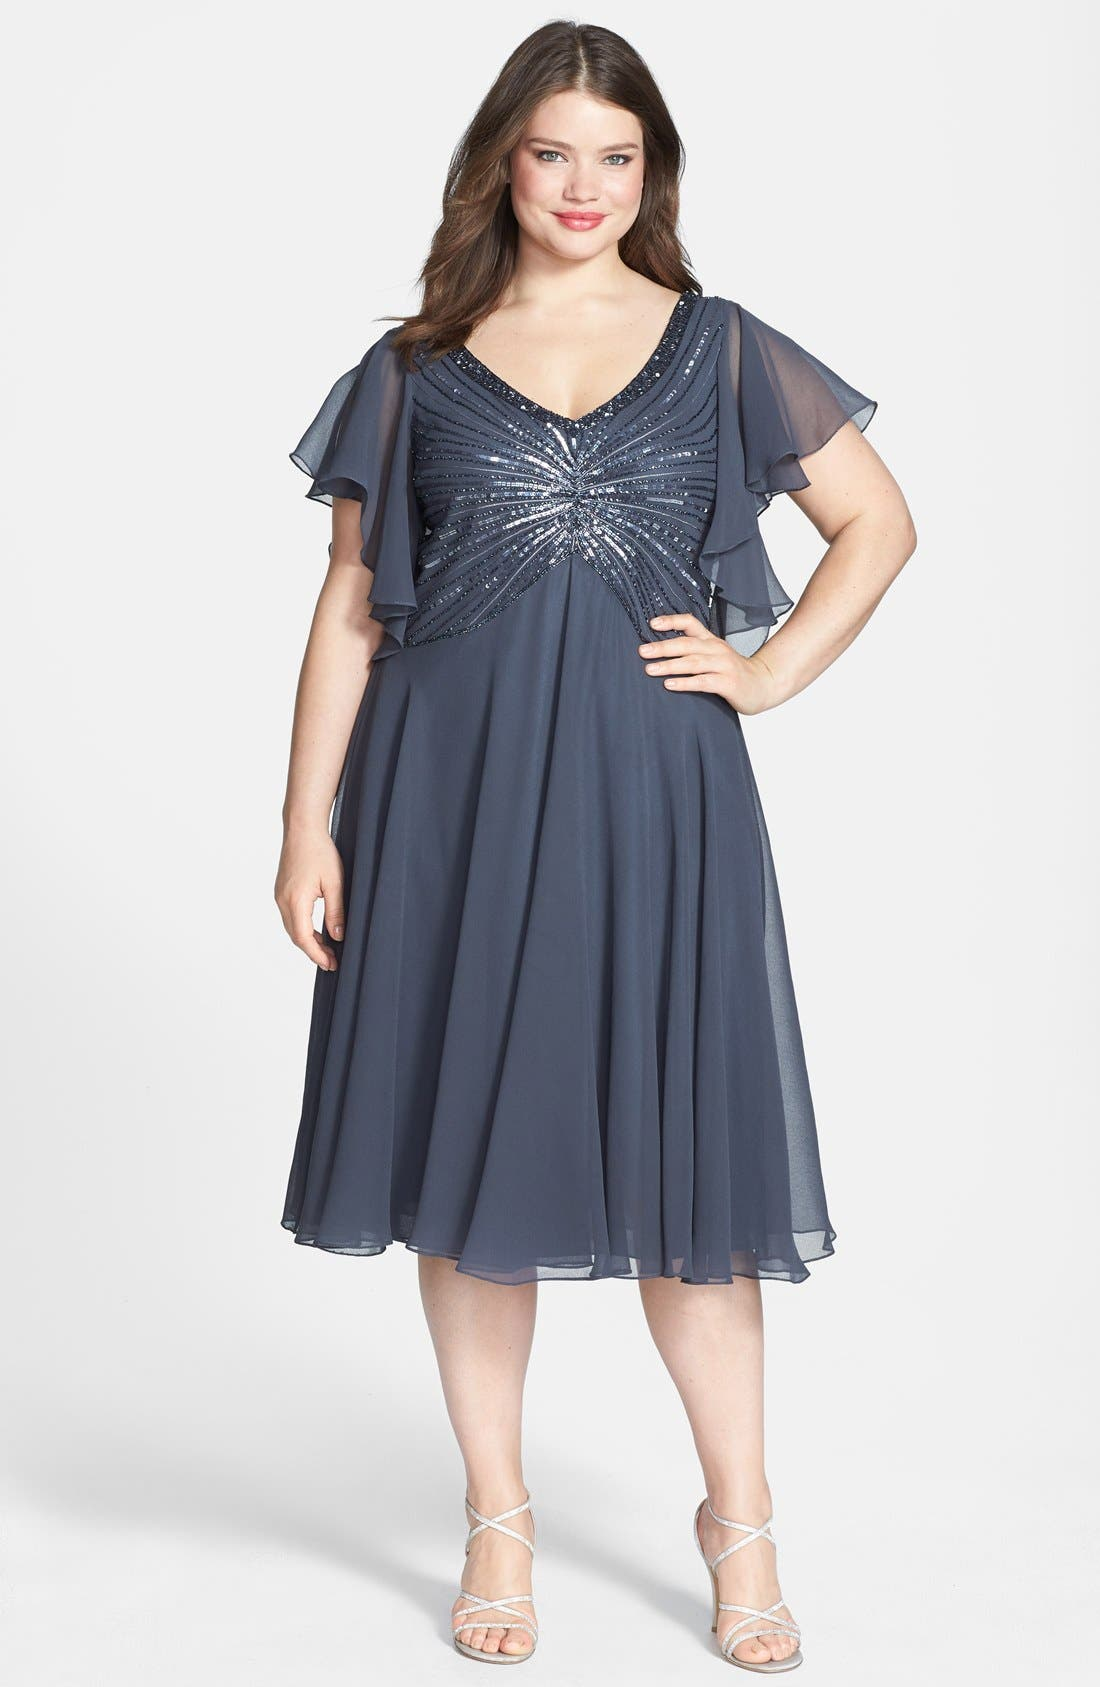 Alternate Image 1 Selected - J Kara Beaded Dress (Plus Size)